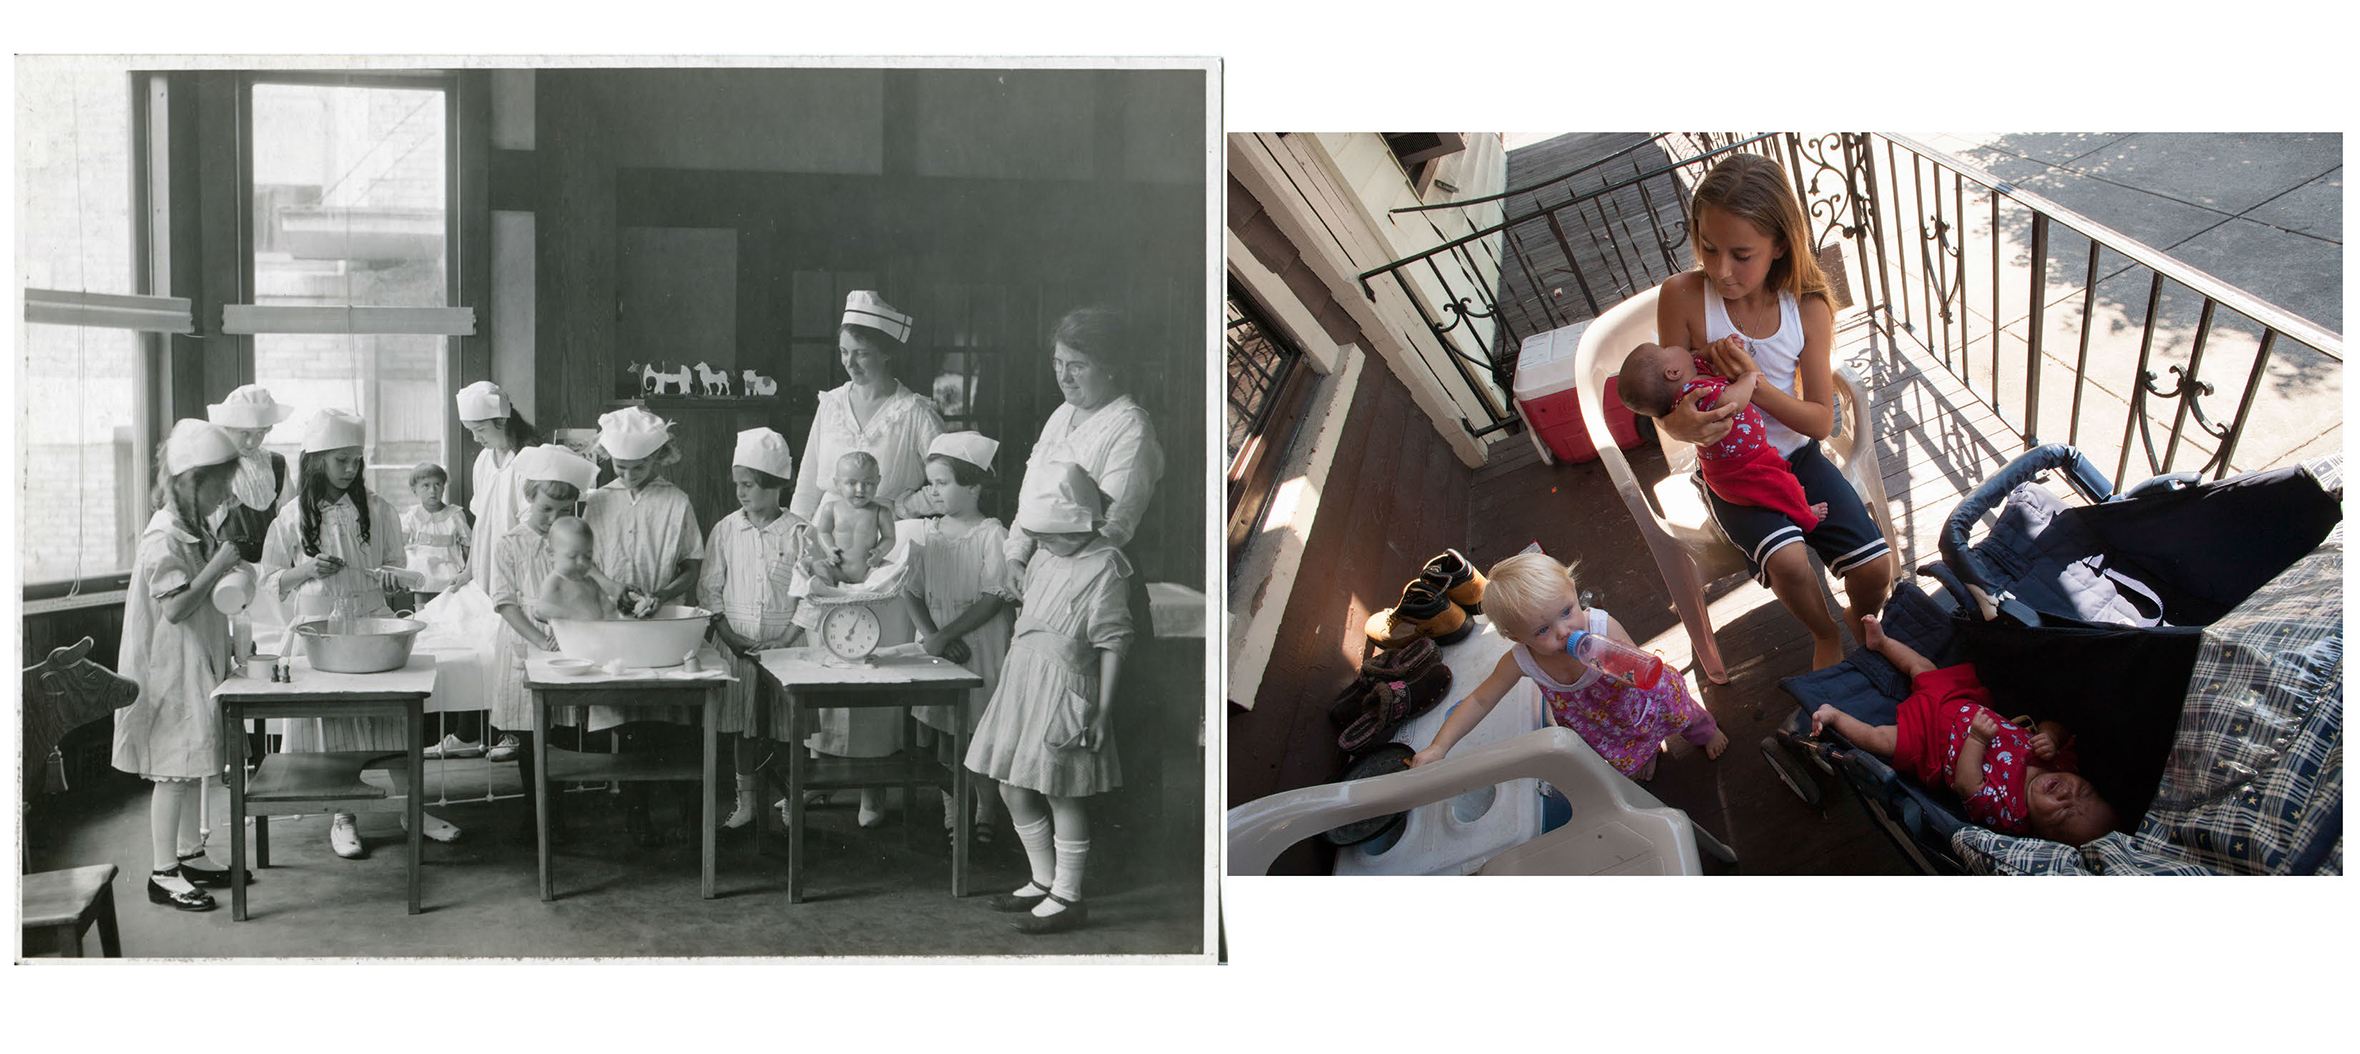 Left: Propaganda photo of Little Mothers League donated to The Rensselaer County Historical Society by The Office of Medical Misconduct.  c. 1940.                                                              Right: Christy Stocklas, 10 years old, tends to three of the younger ones in her family.                                 Troy, NY.  2008.